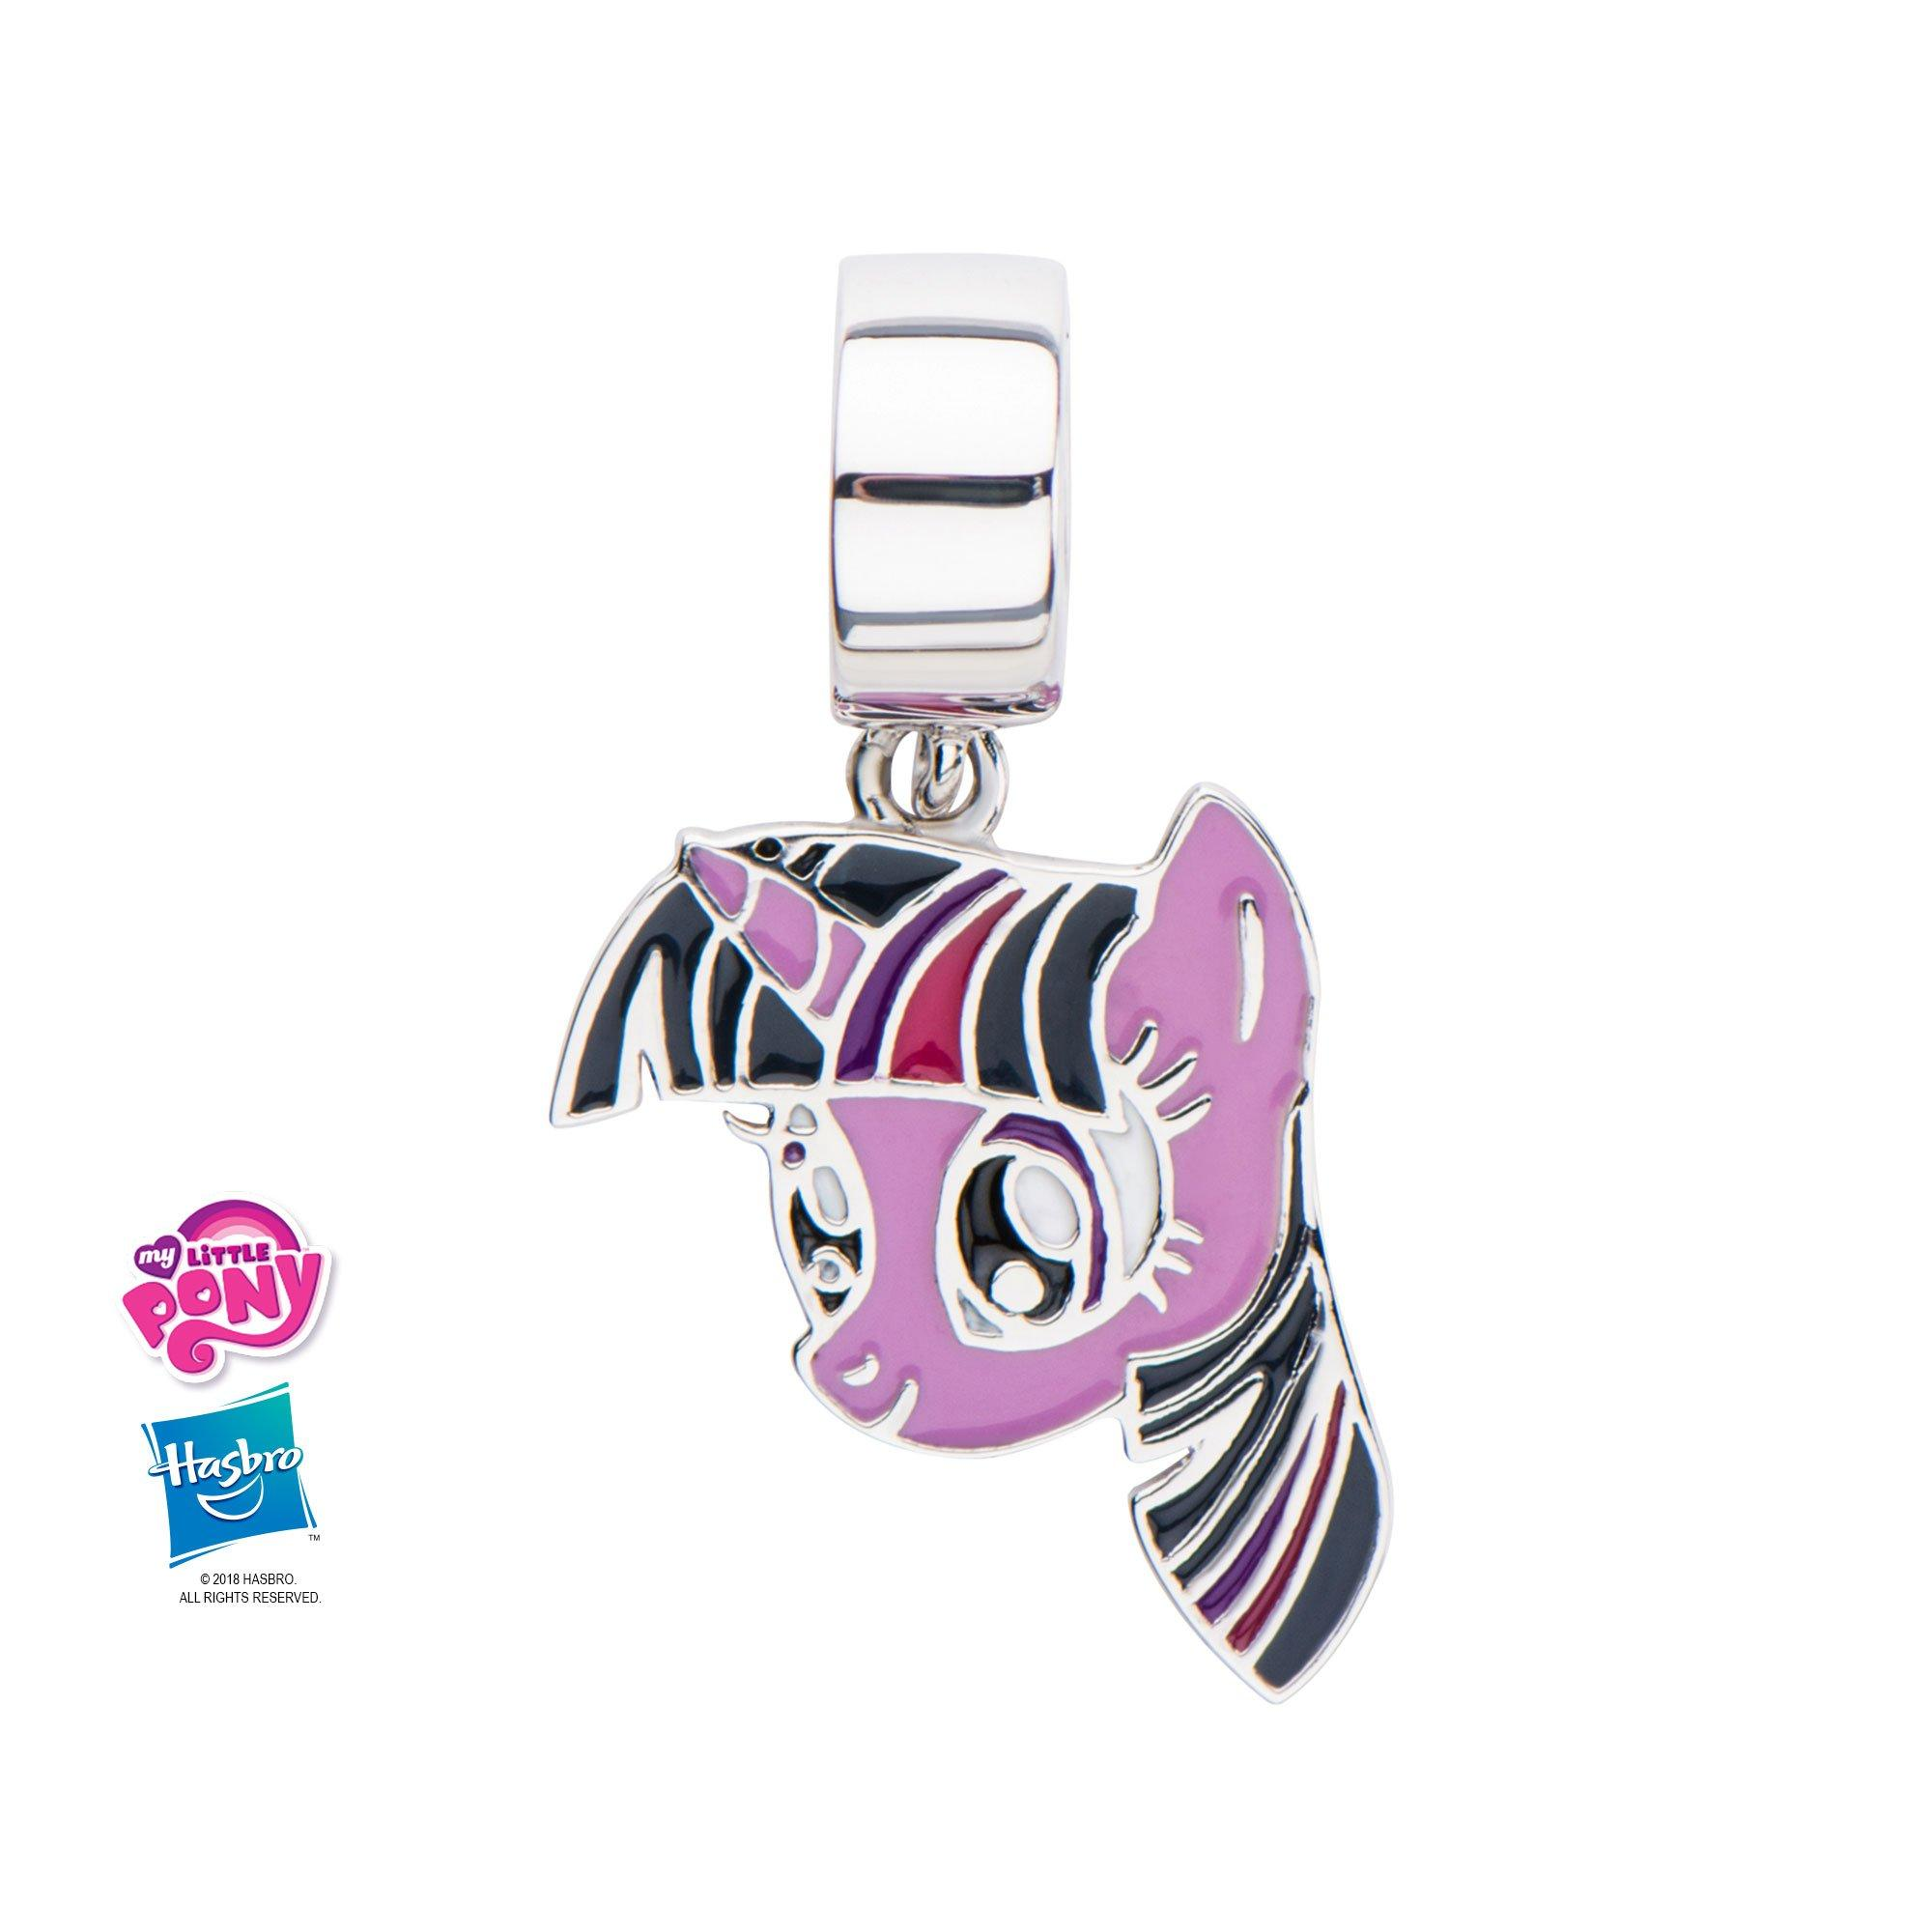 My Little Pony: Friendship Is Magic Twilight Sparkle Kids Dangle Charm  GameStop